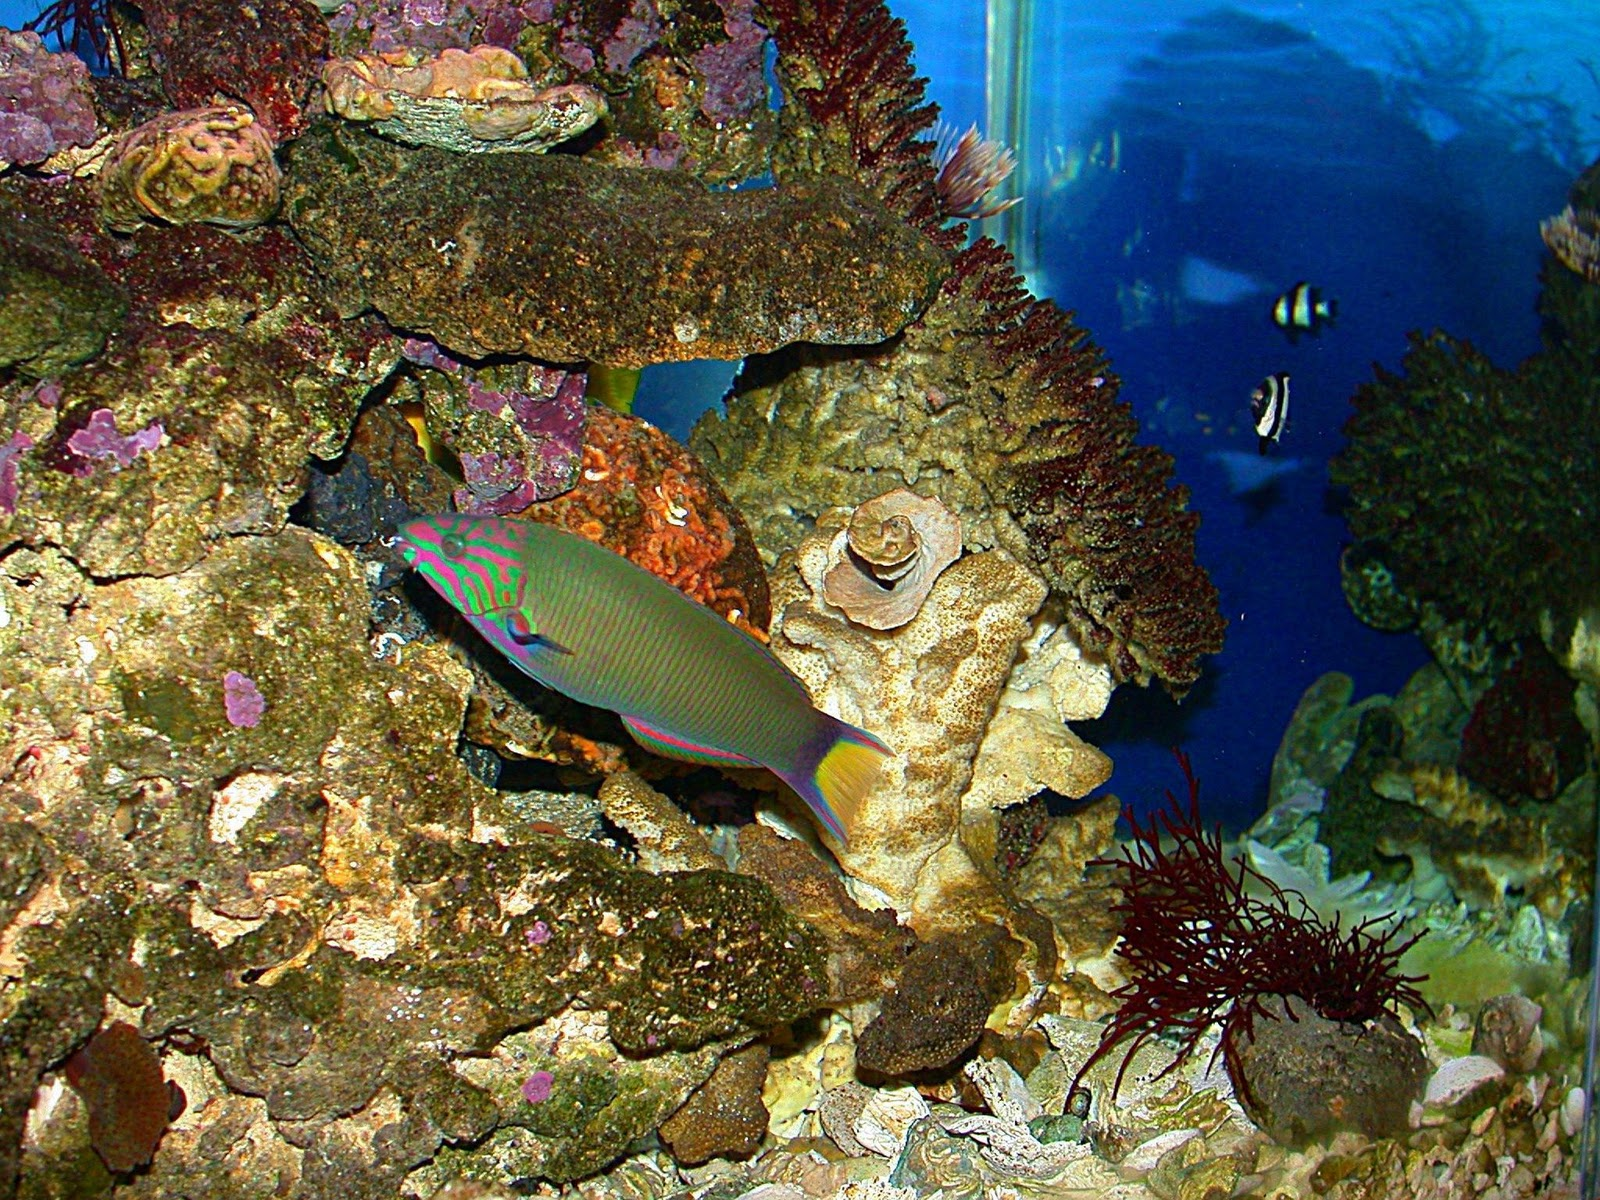 Fish Wallpapers,Fish Pictures,Fish Photos: Tropical Fish ...  Fish Wallpapers...